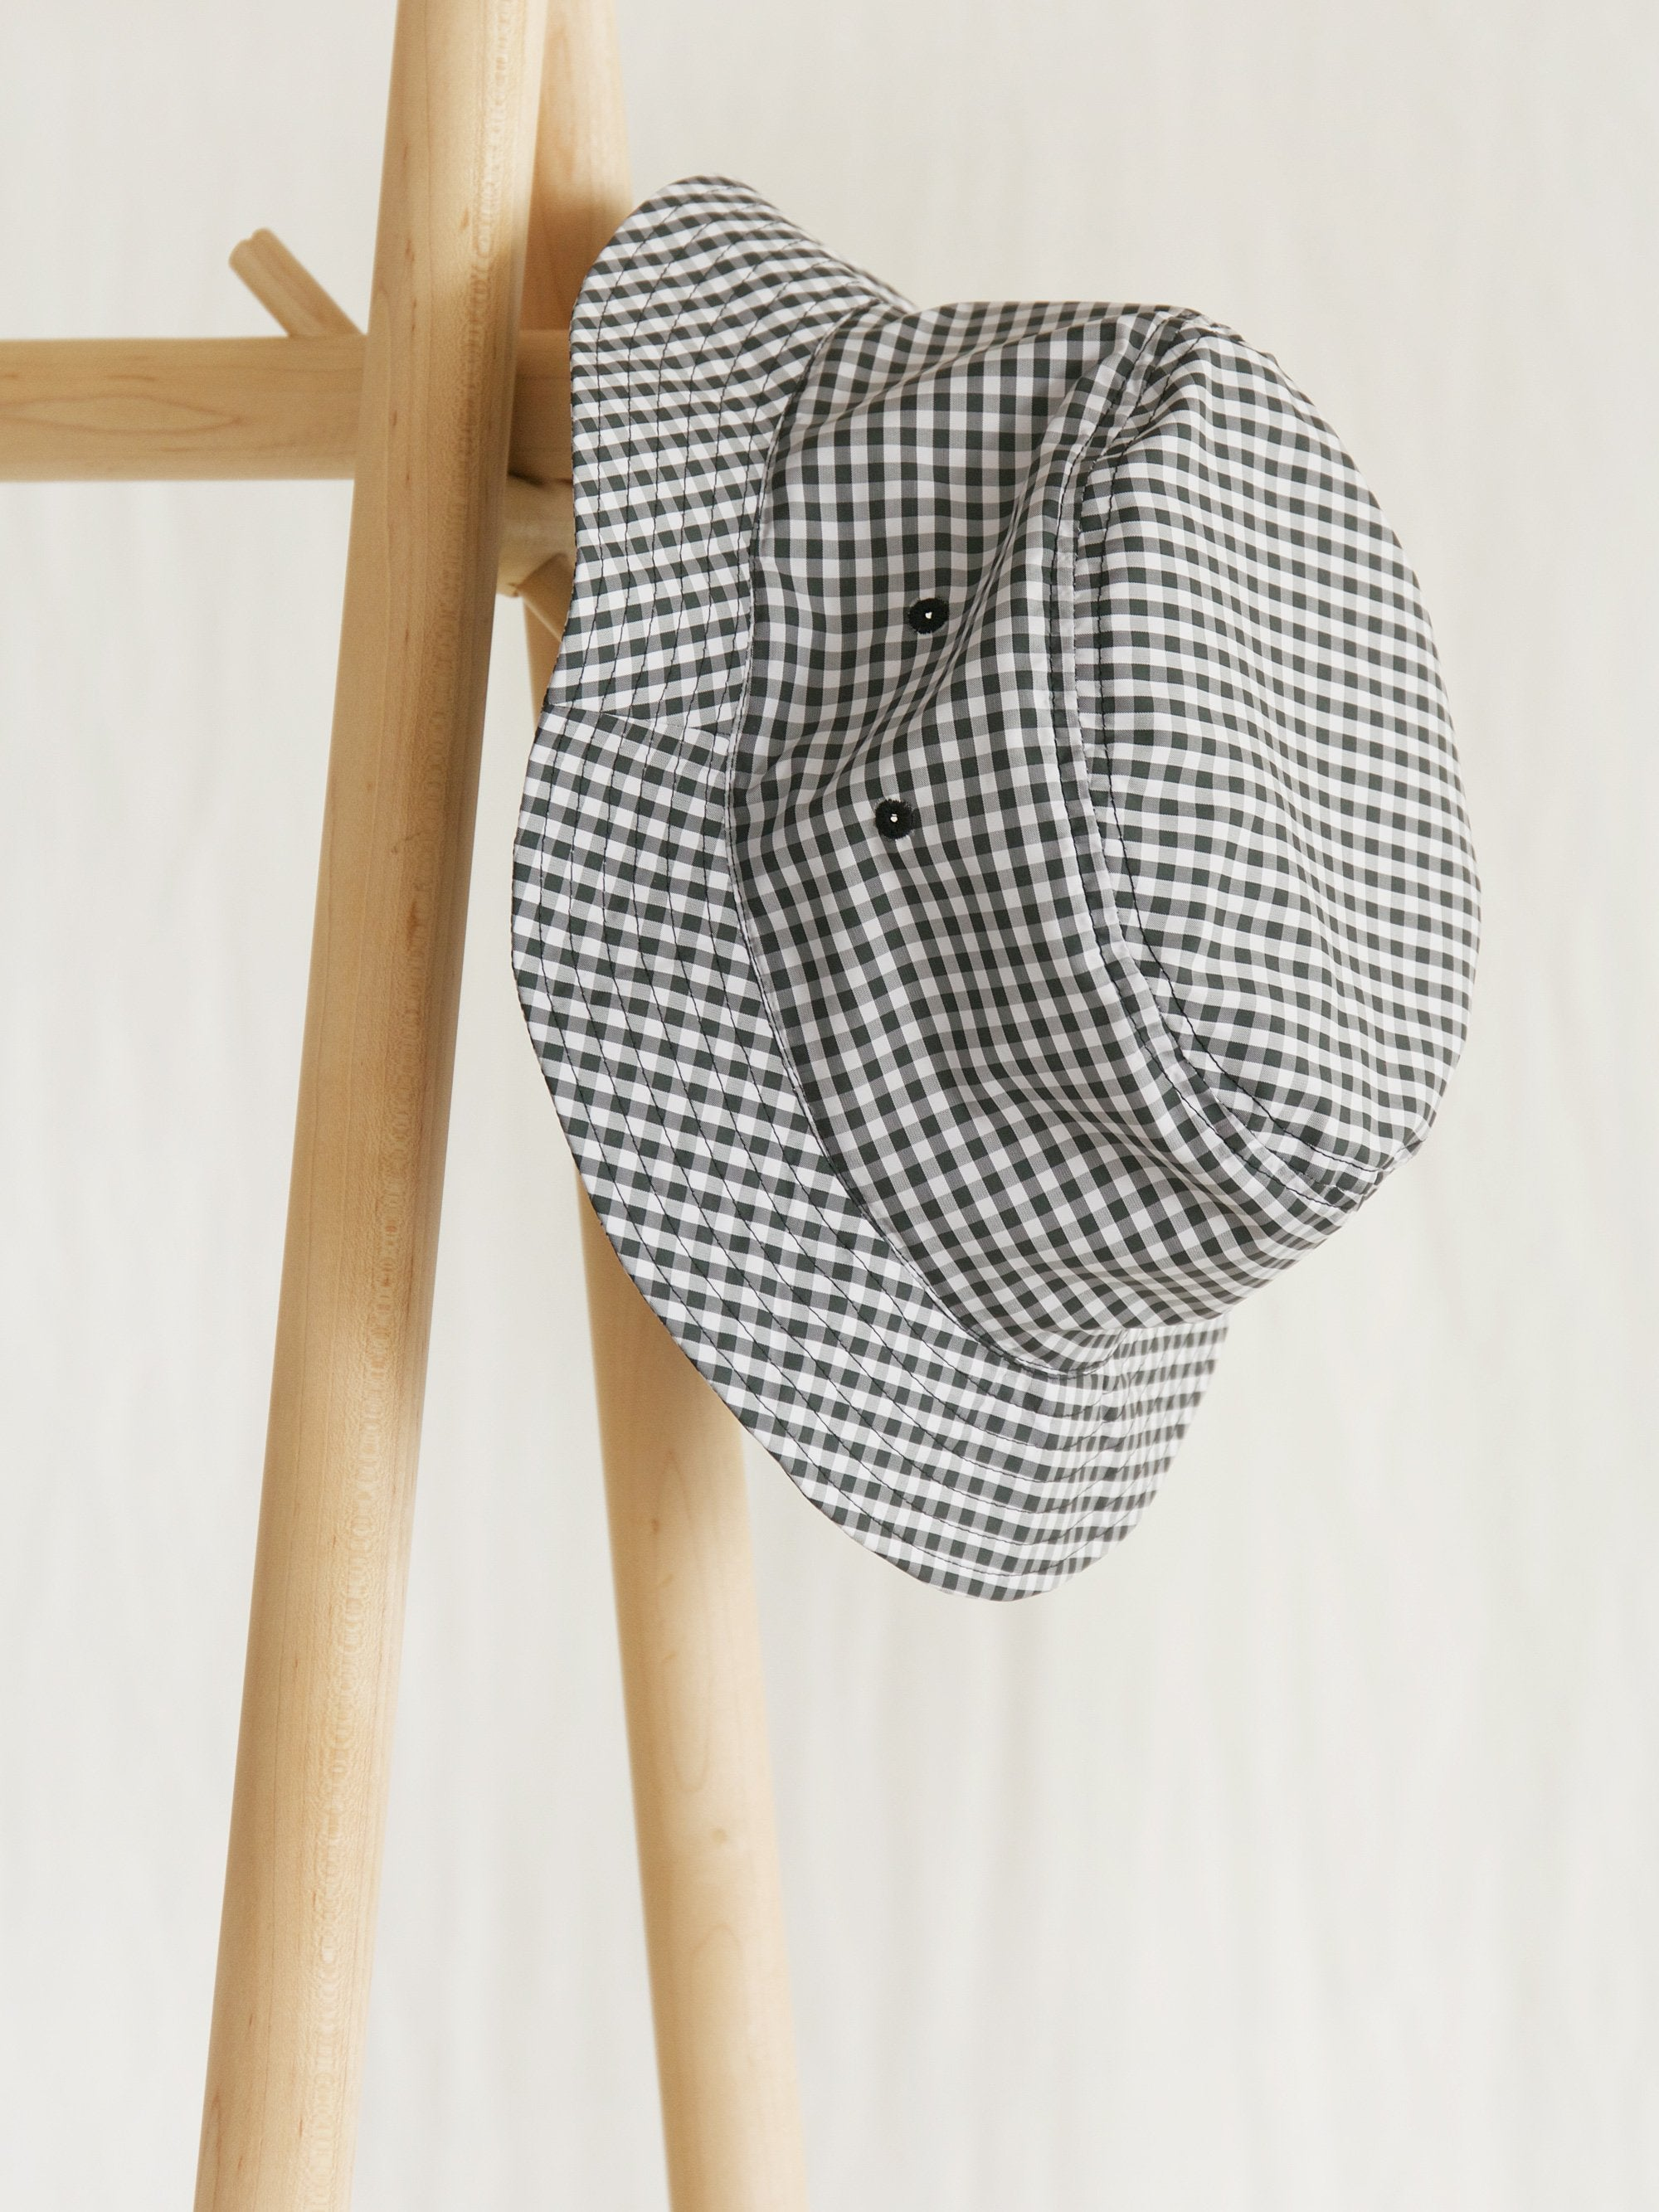 Namu Shop - paa Bucket Hat One - Charcoal Gingham